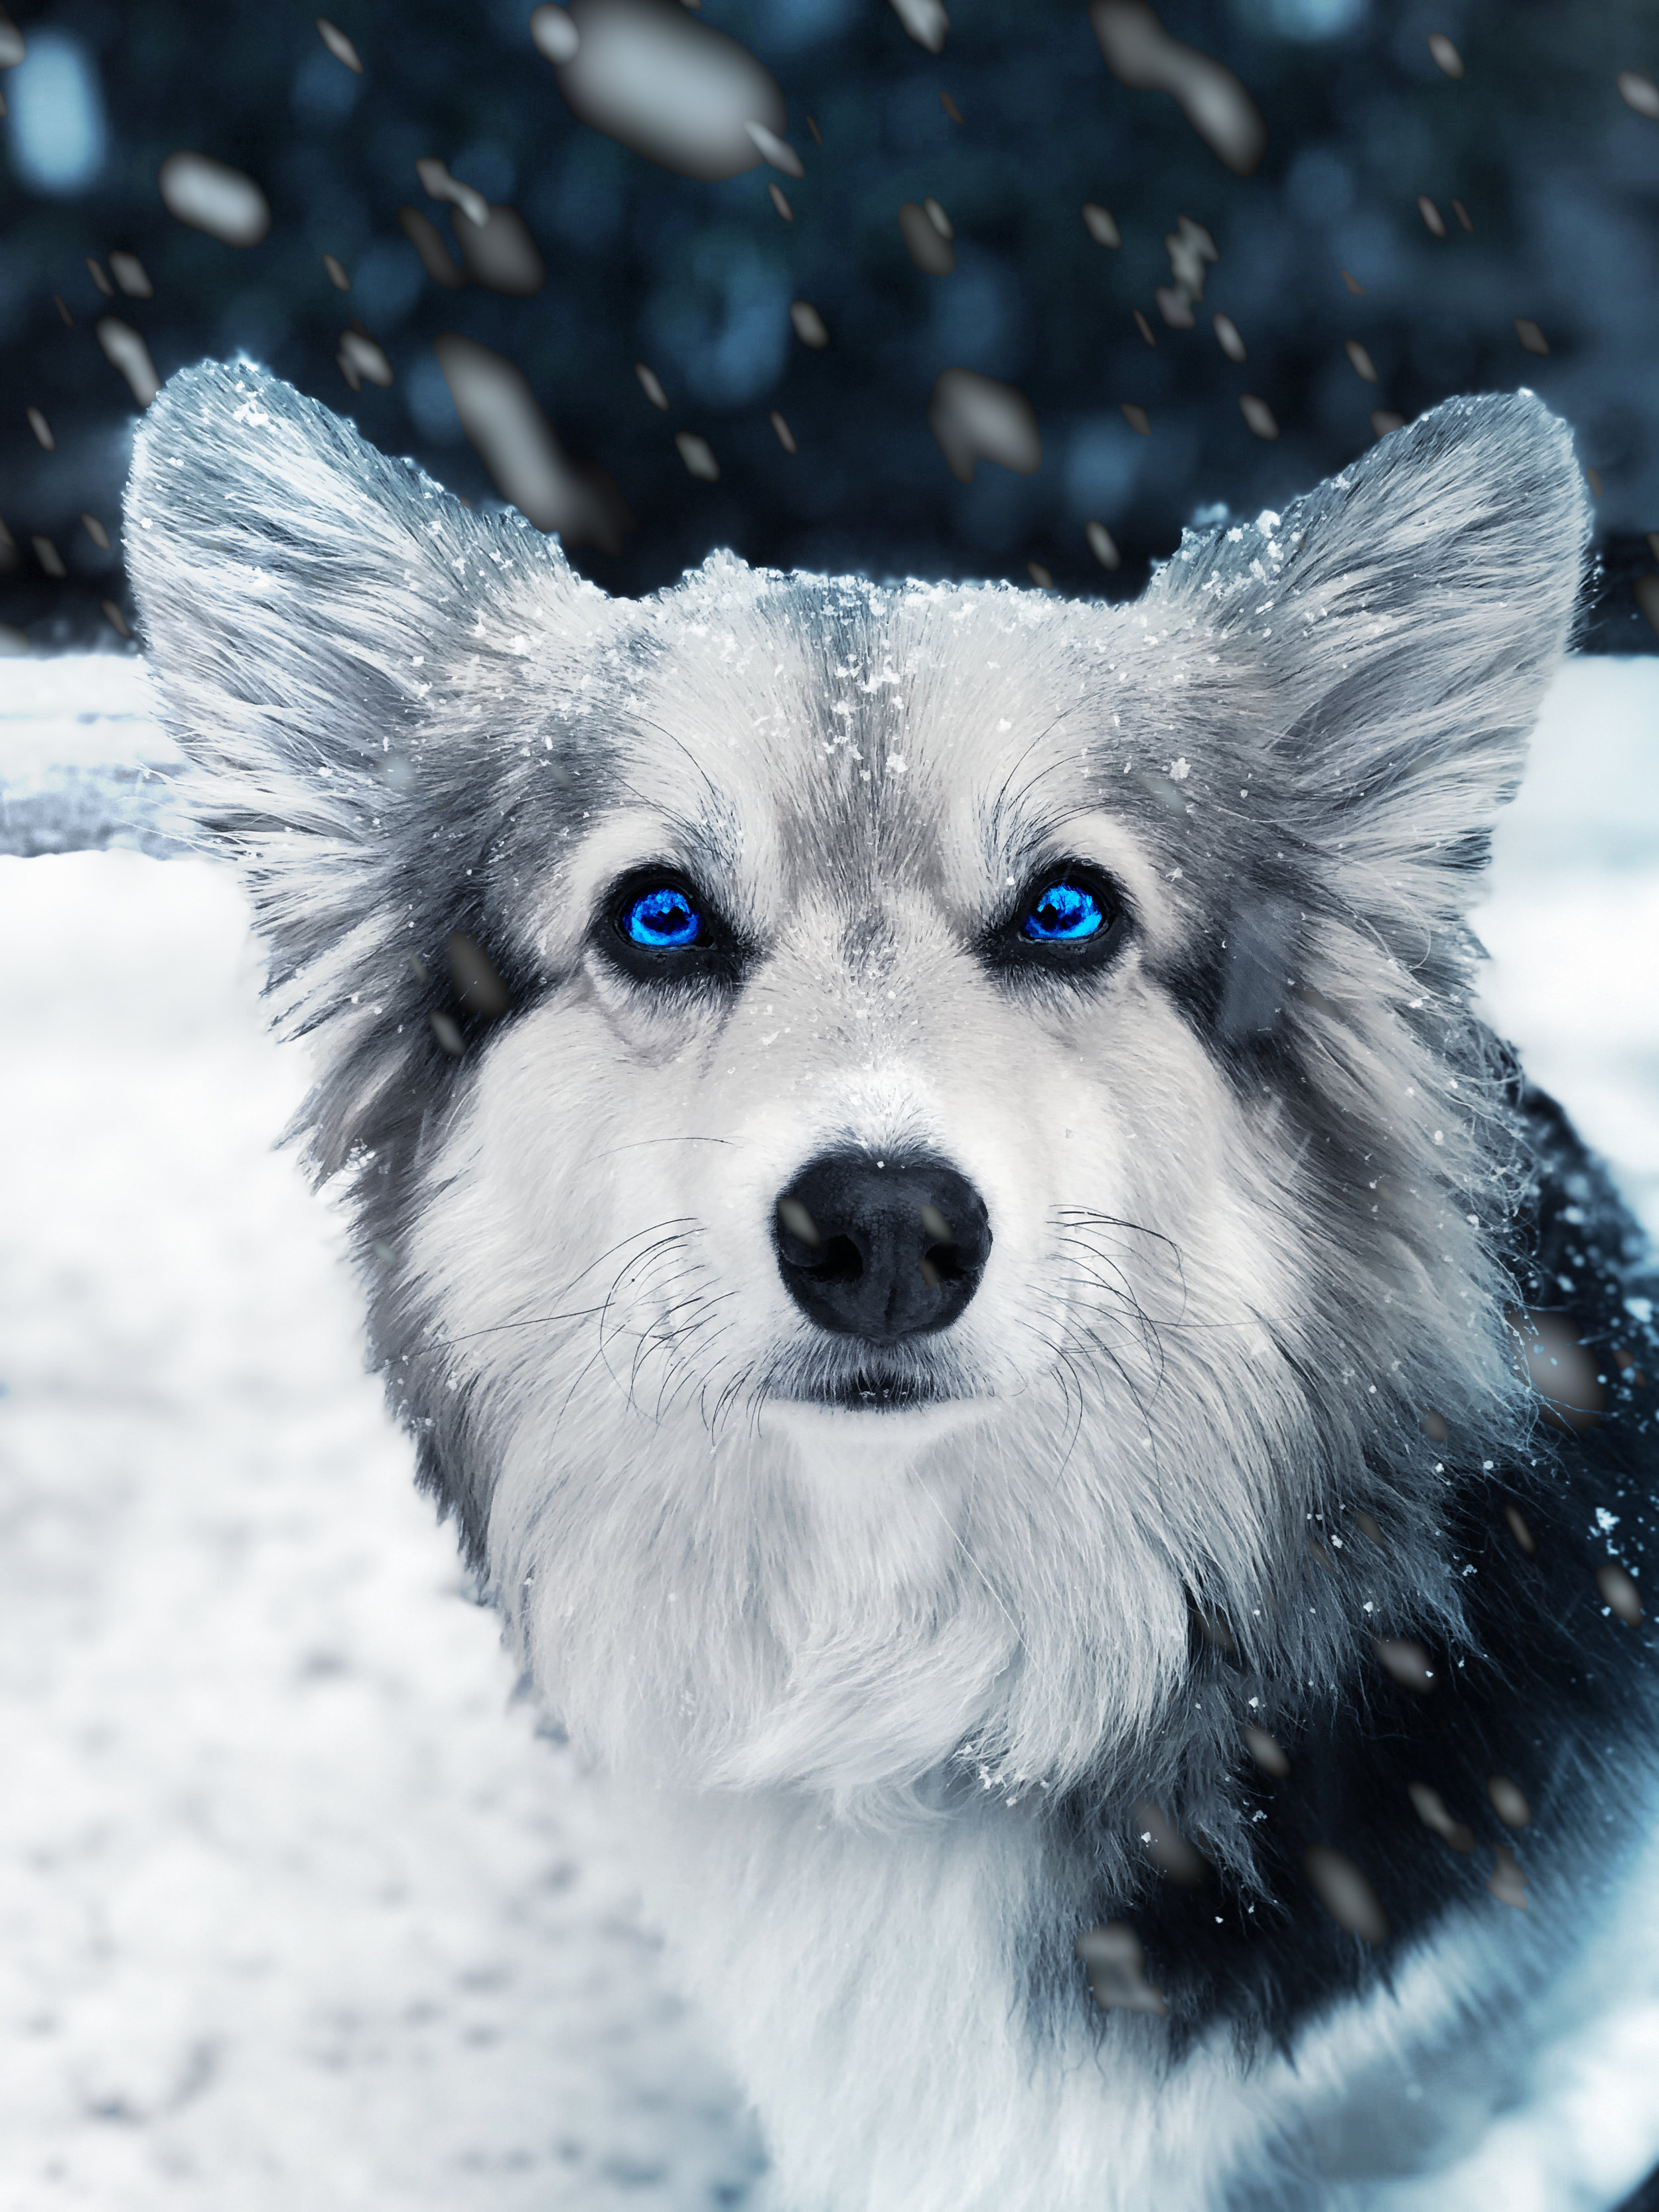 IMG-1737-whitewalker.jpg